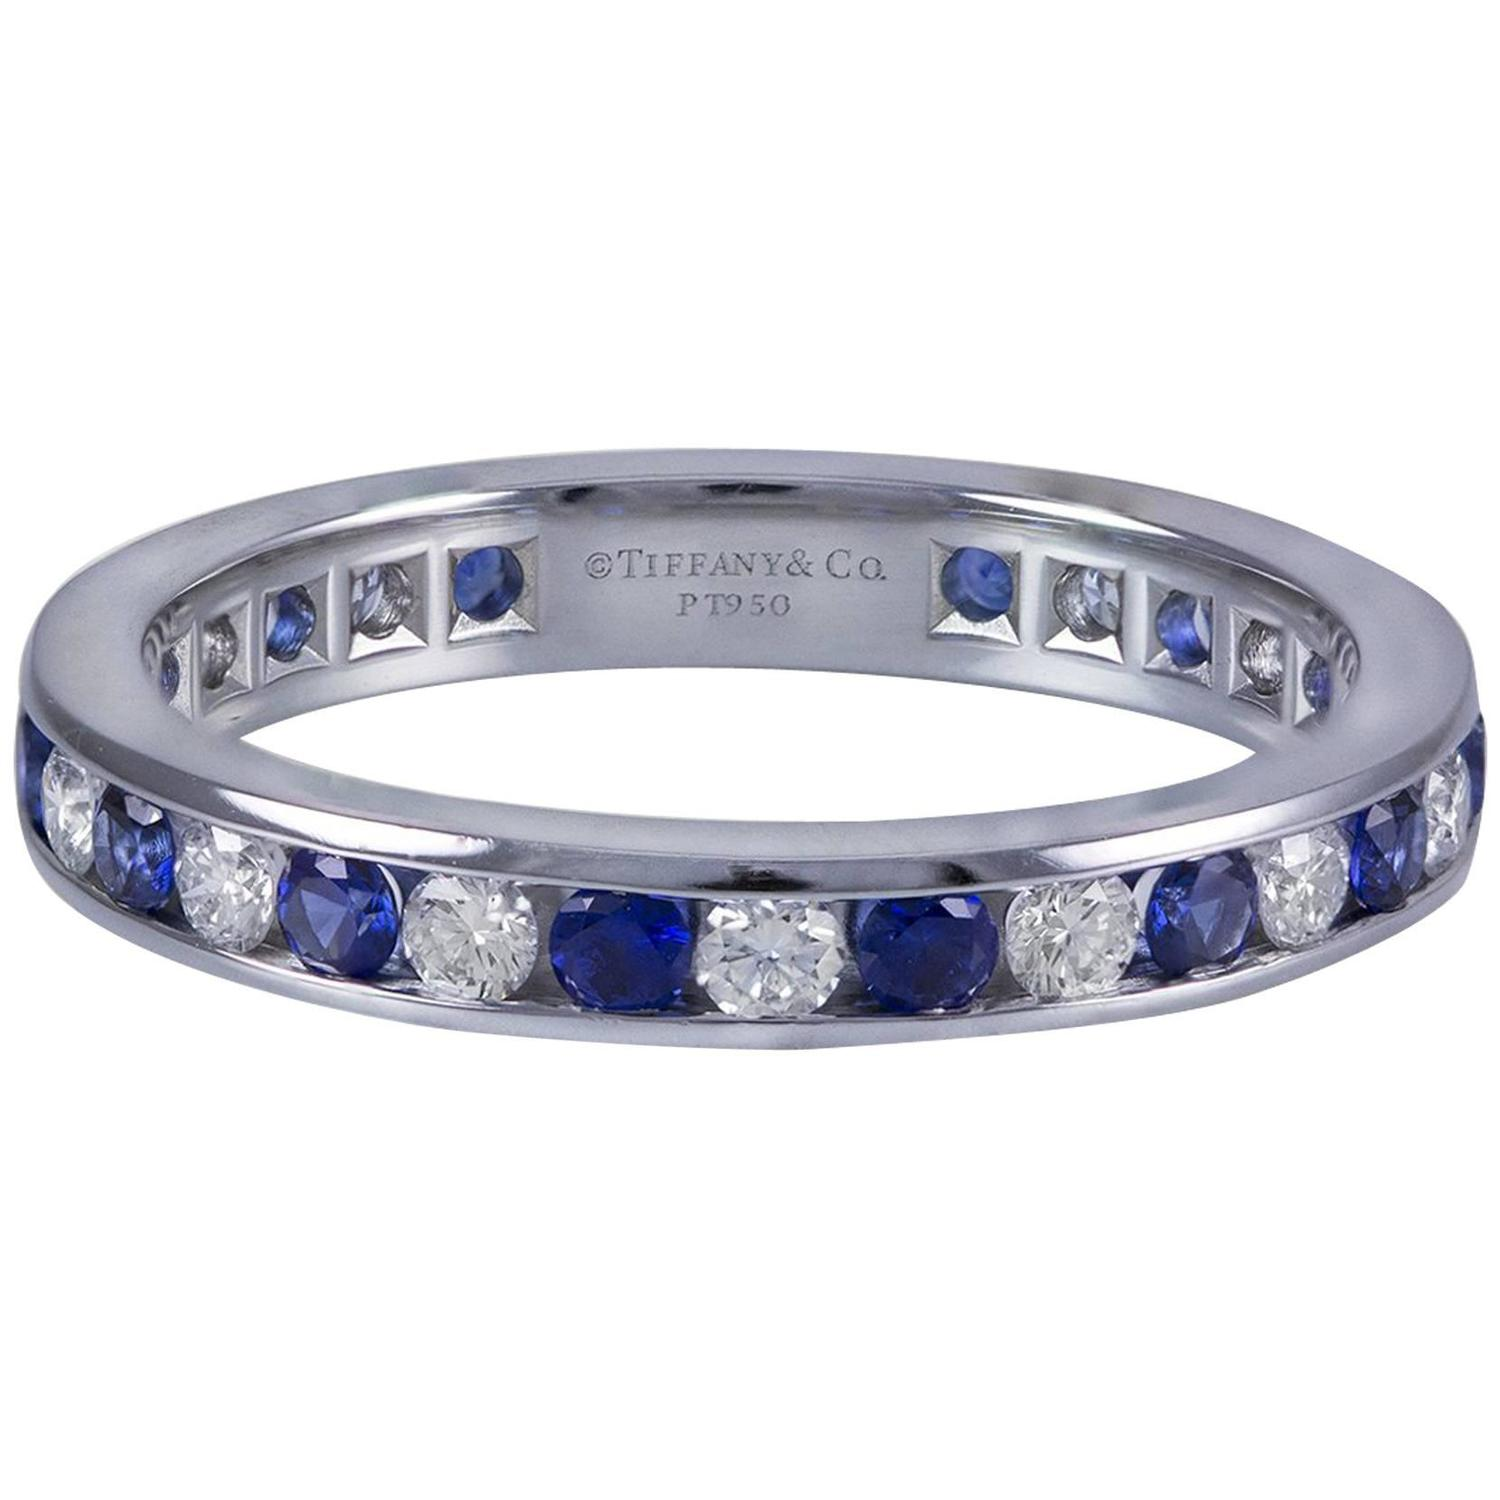 blue diamond wedding and band kirk charlotte product kara milgrain platinum sapphire baguette